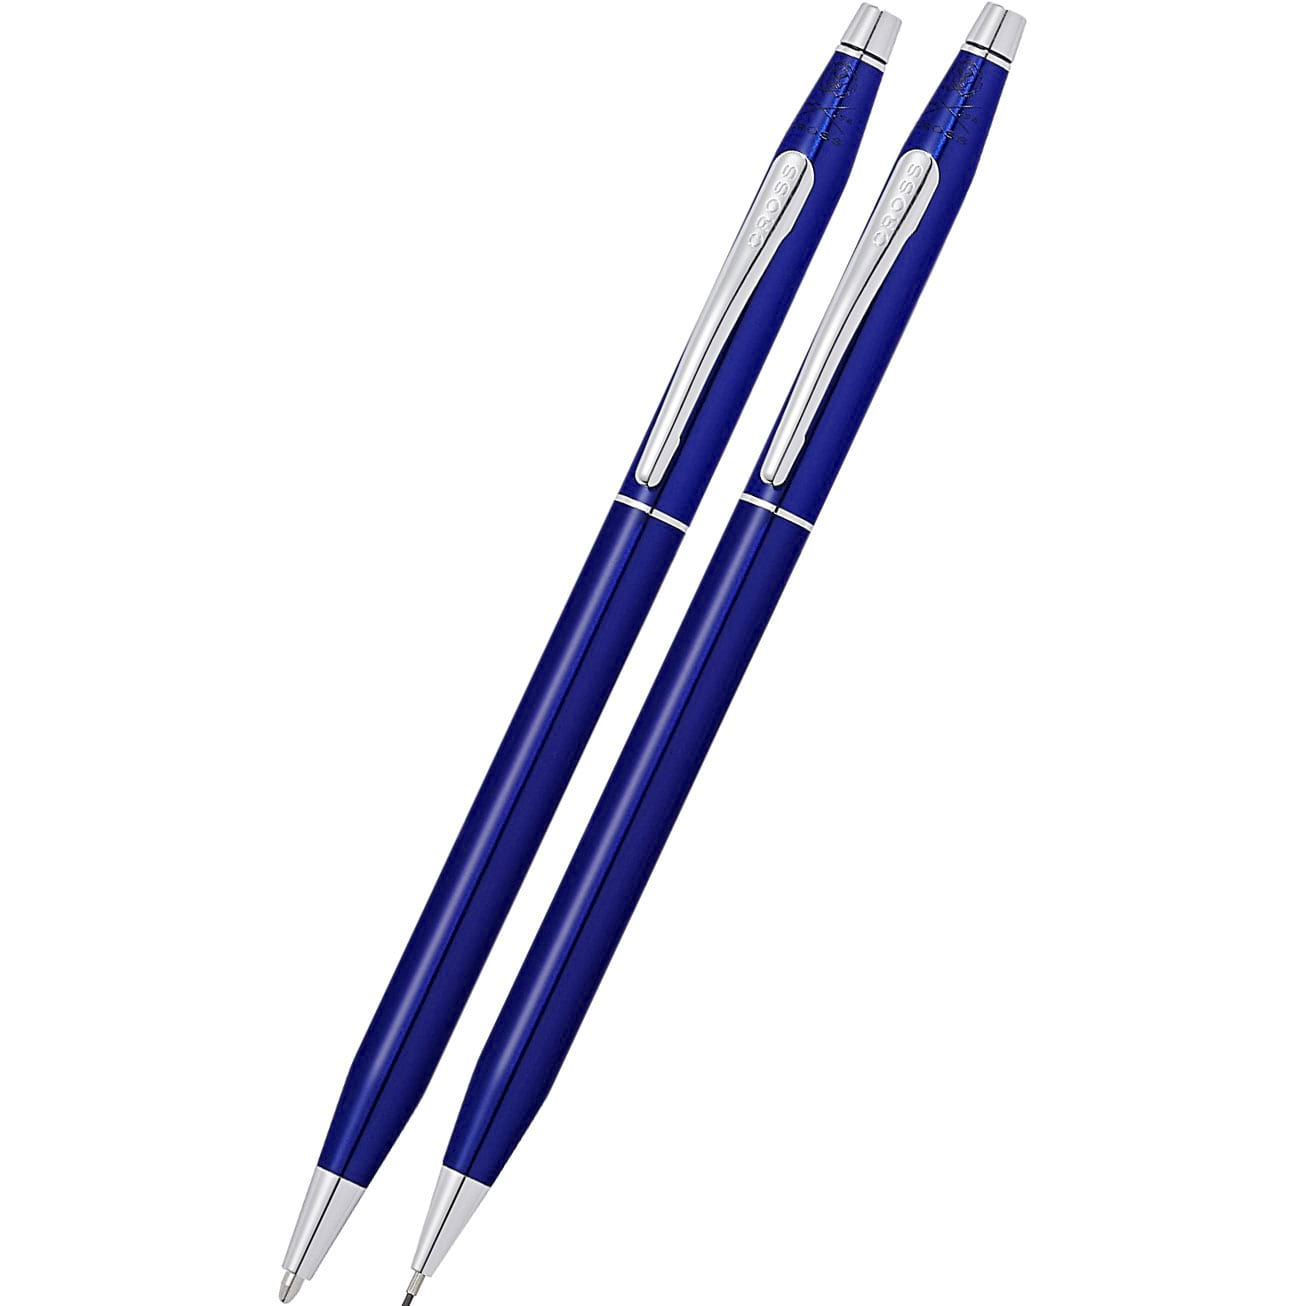 Cross Classic Century Translucent Blue Lacquer Ballpoint Pen and 0.7mm Pencil Set